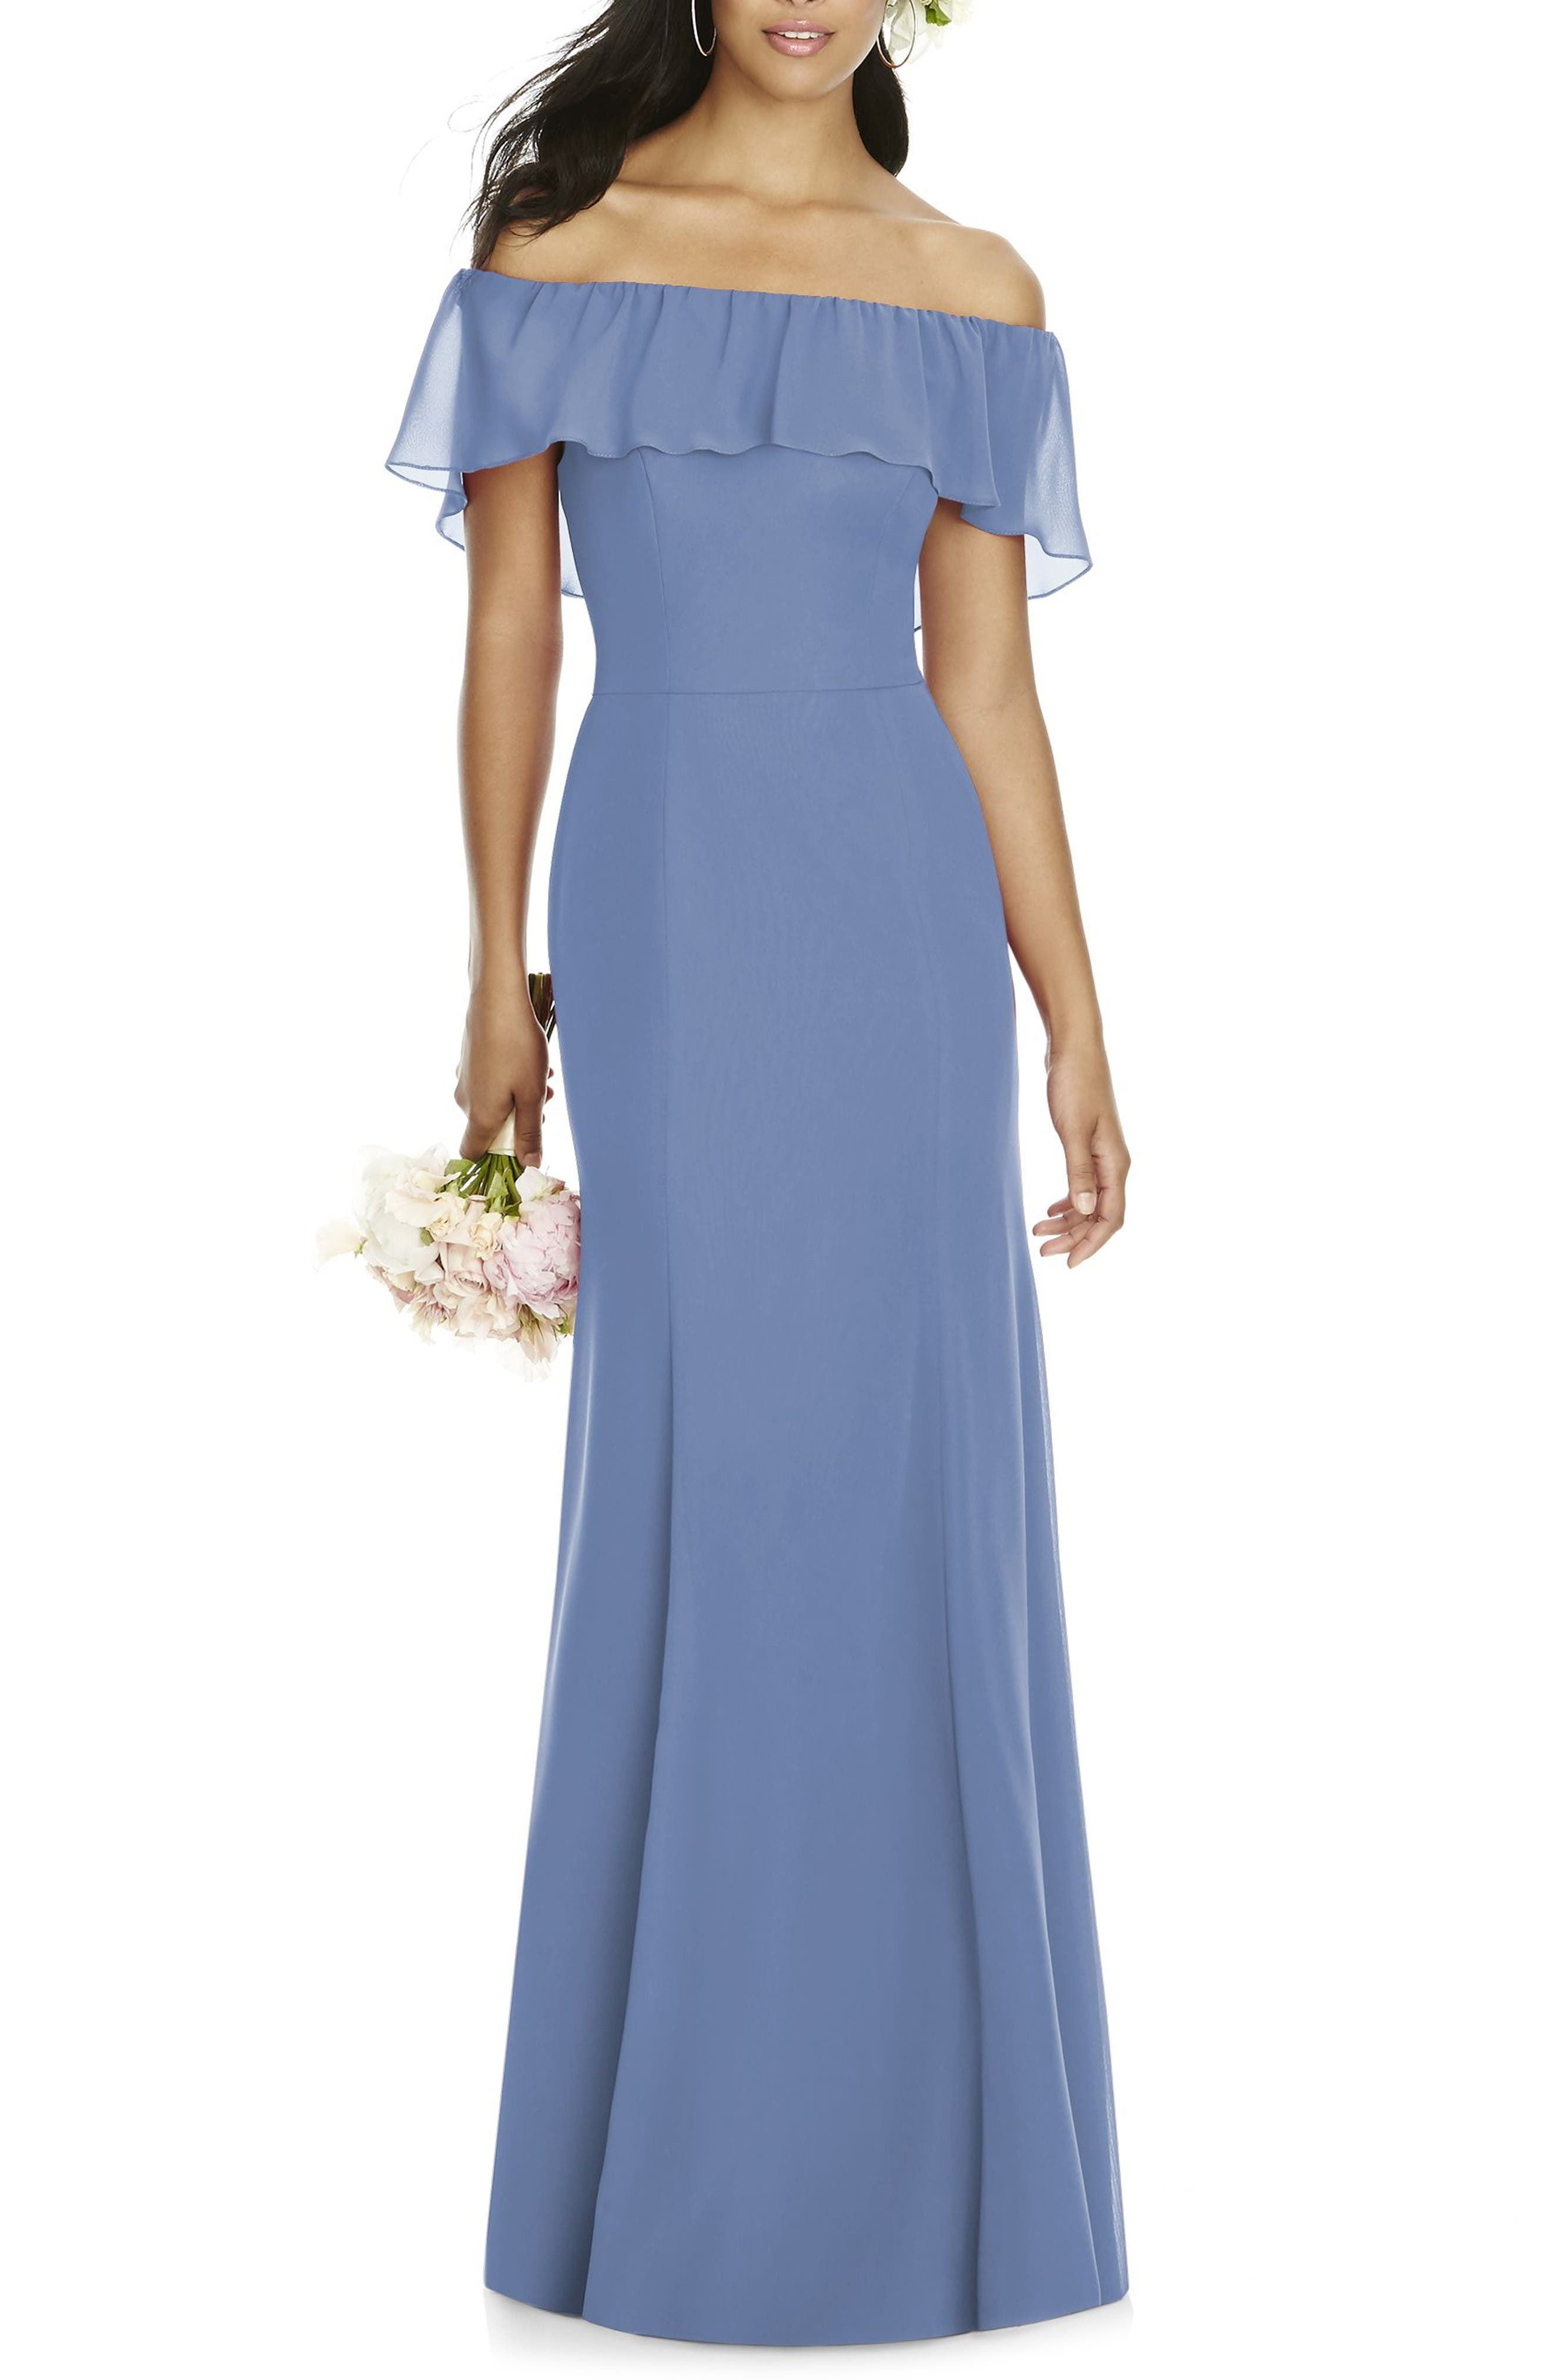 Alternate Image 1 Selected - Social Bridesmaids Ruffle Off the Shoulder Chiffon Gown